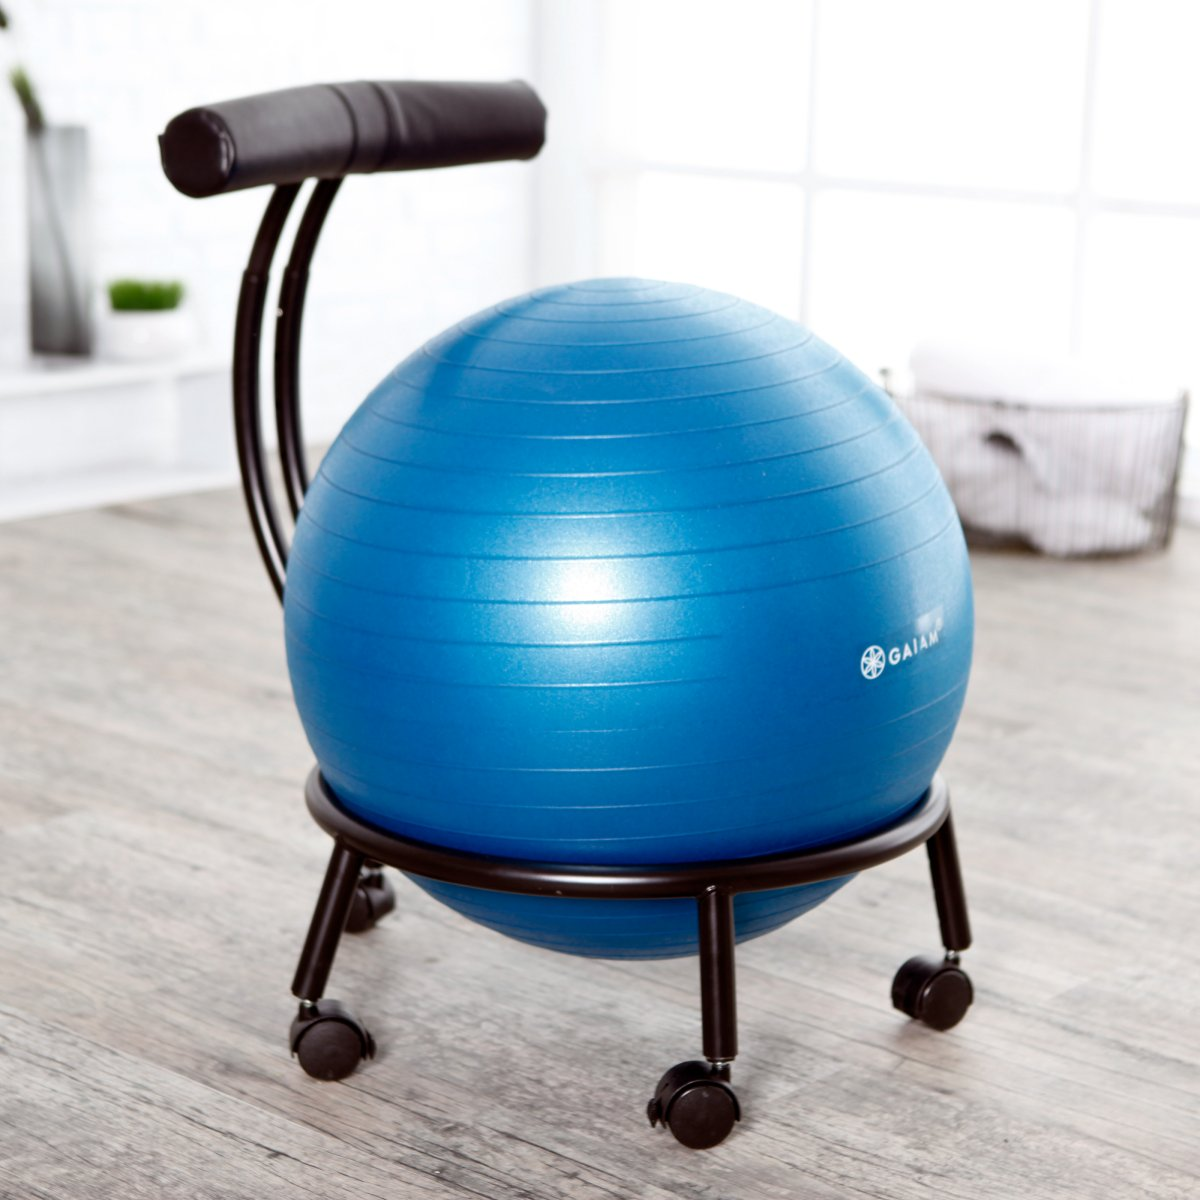 chair modern for reviews co office medicine in balance getrewind exercise desk home ball